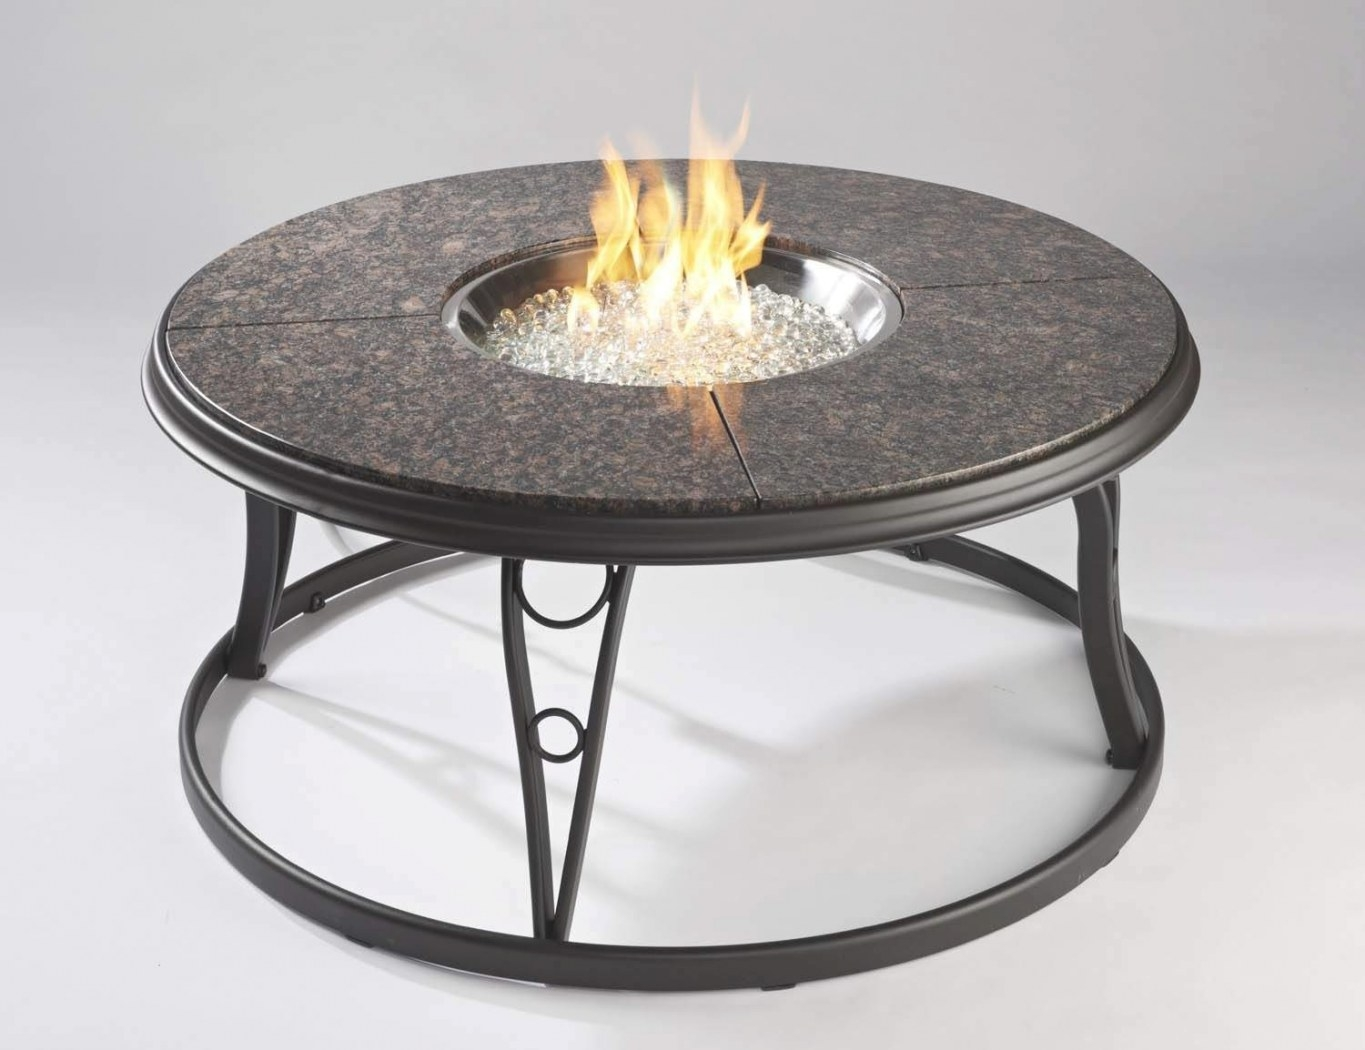 Outdoor Greatroom Granite 42 Inch Round Gas Fire Pit Table intended for Propane Fire Pit Table